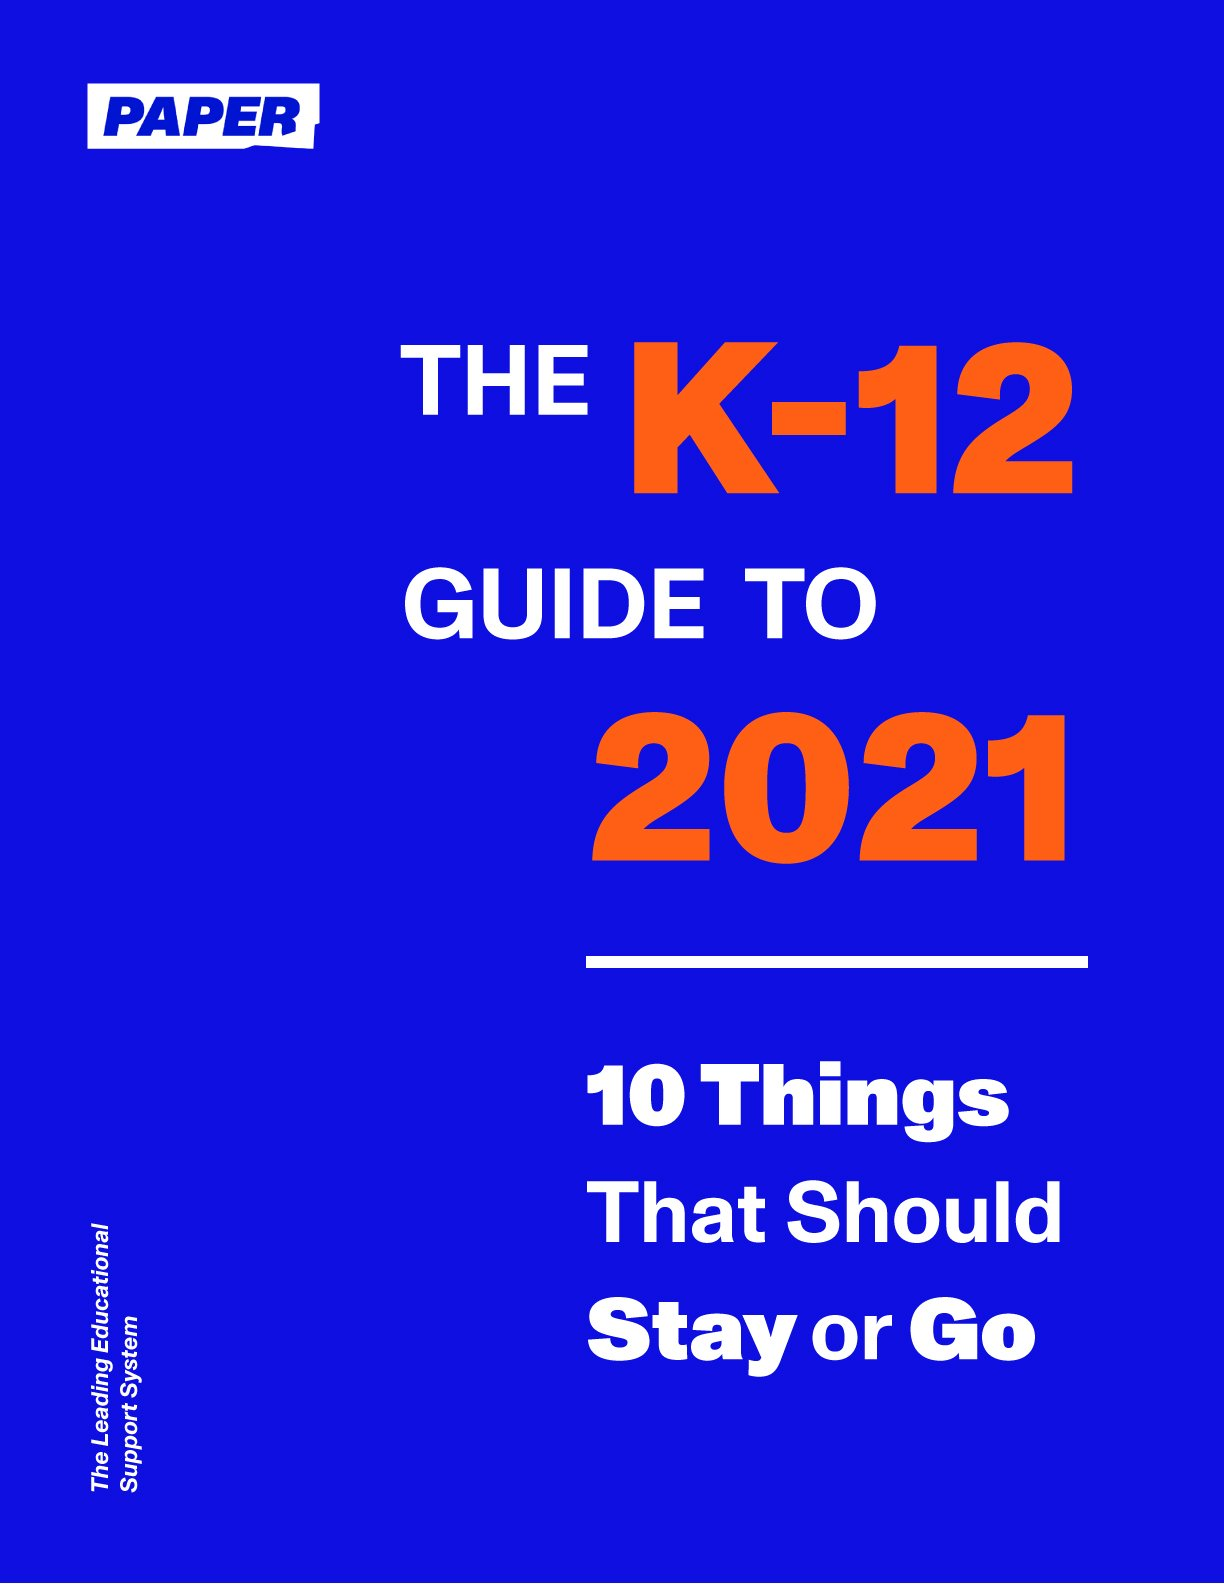 Ebook-The K-12 Guide to 2021-Cover